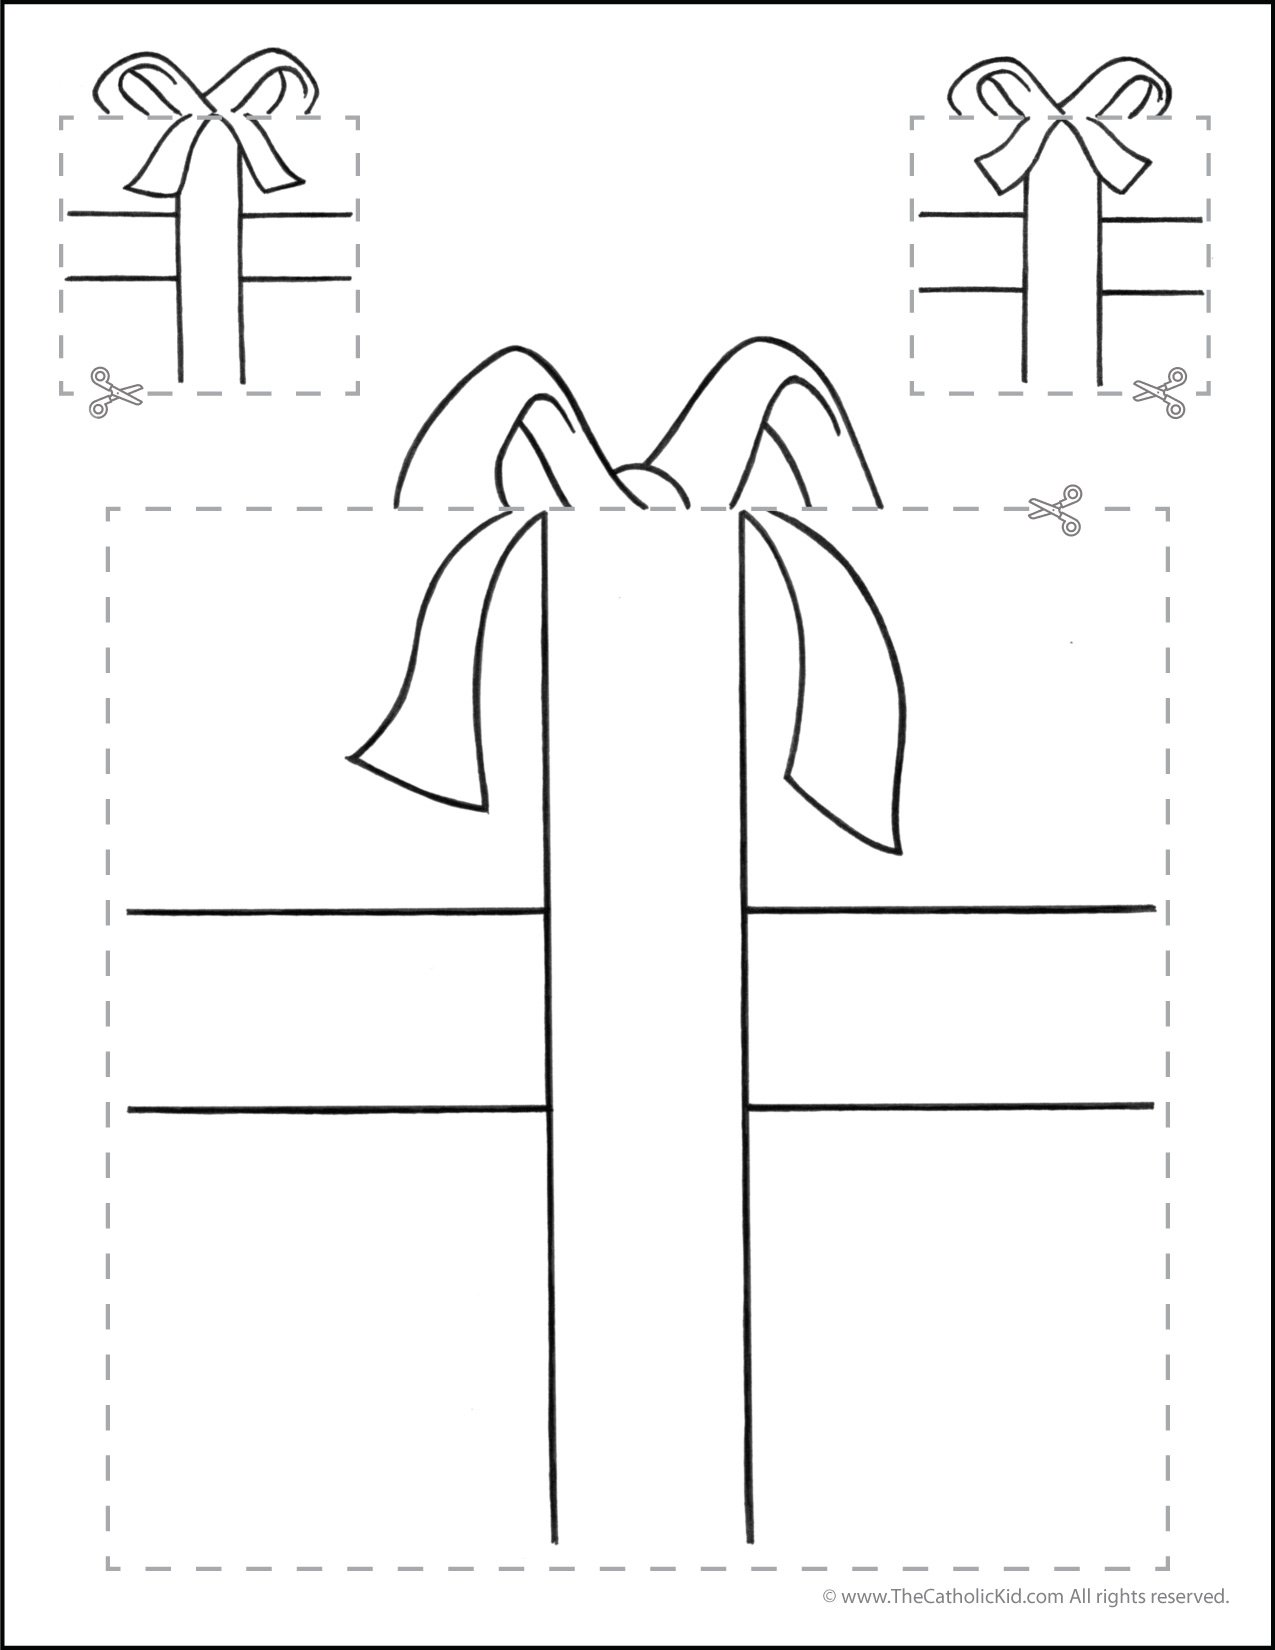 Catholic Scissor Simple Practice Cutting Worksheet Squares